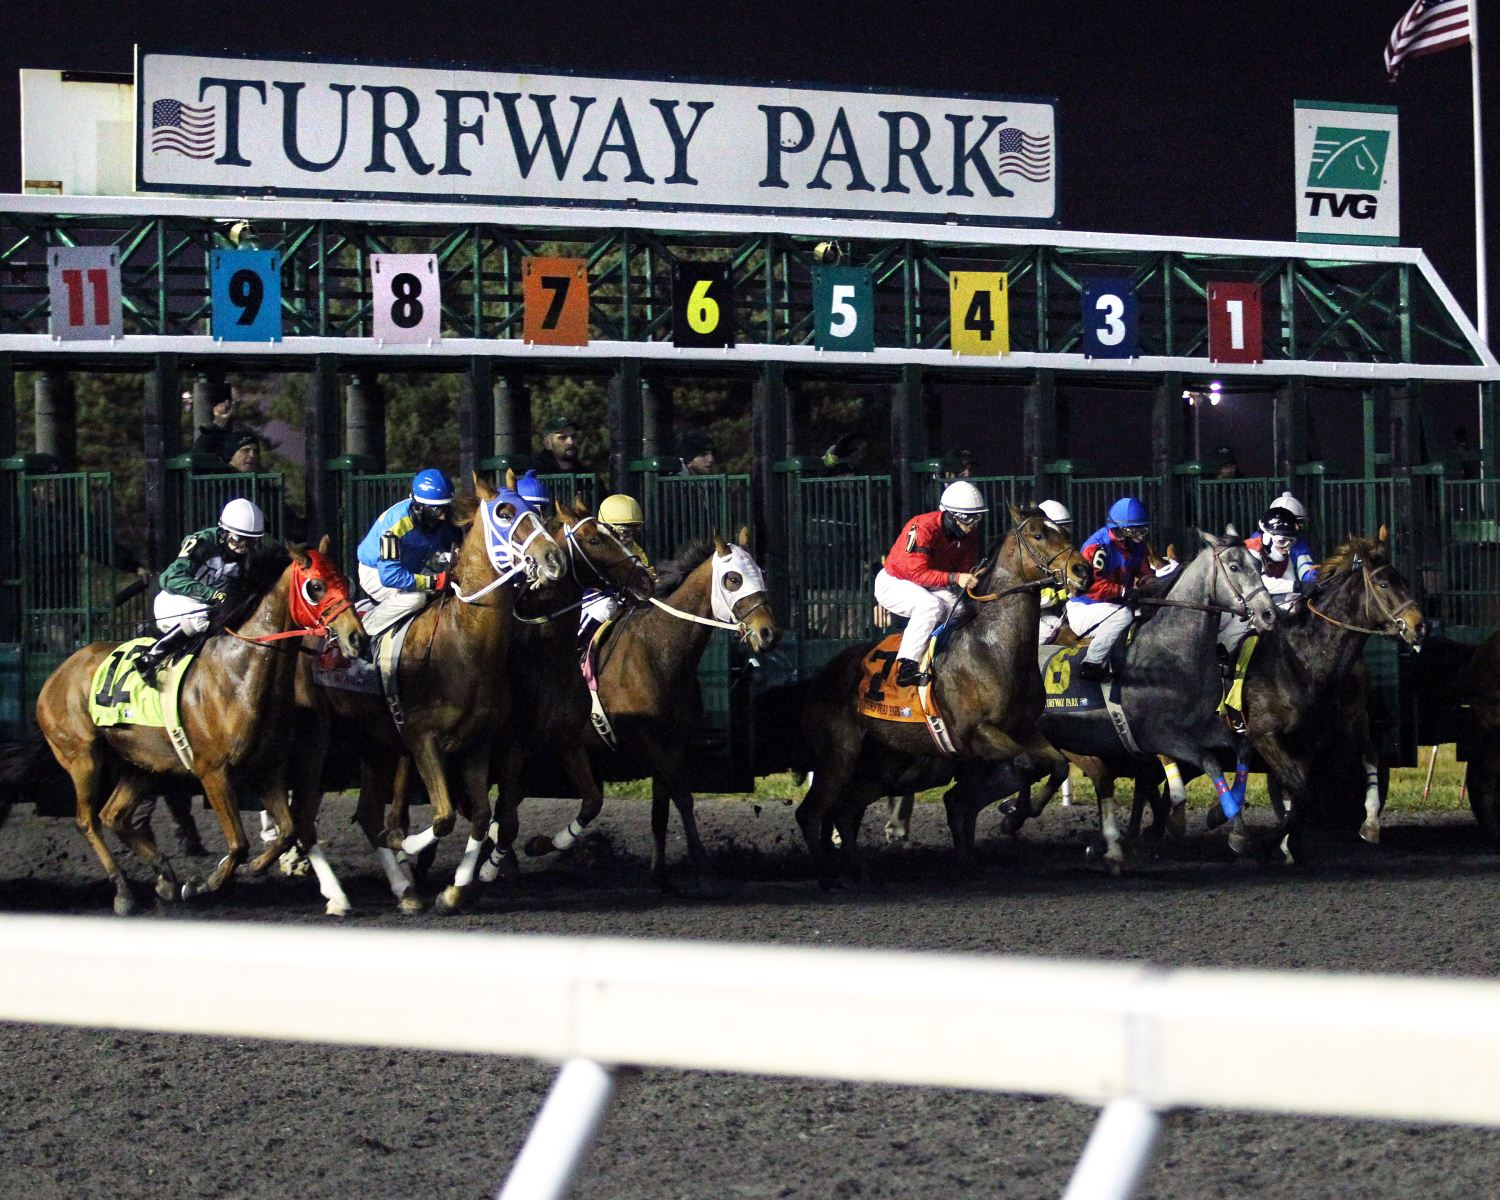 Churchill Downs buys Turfway Park